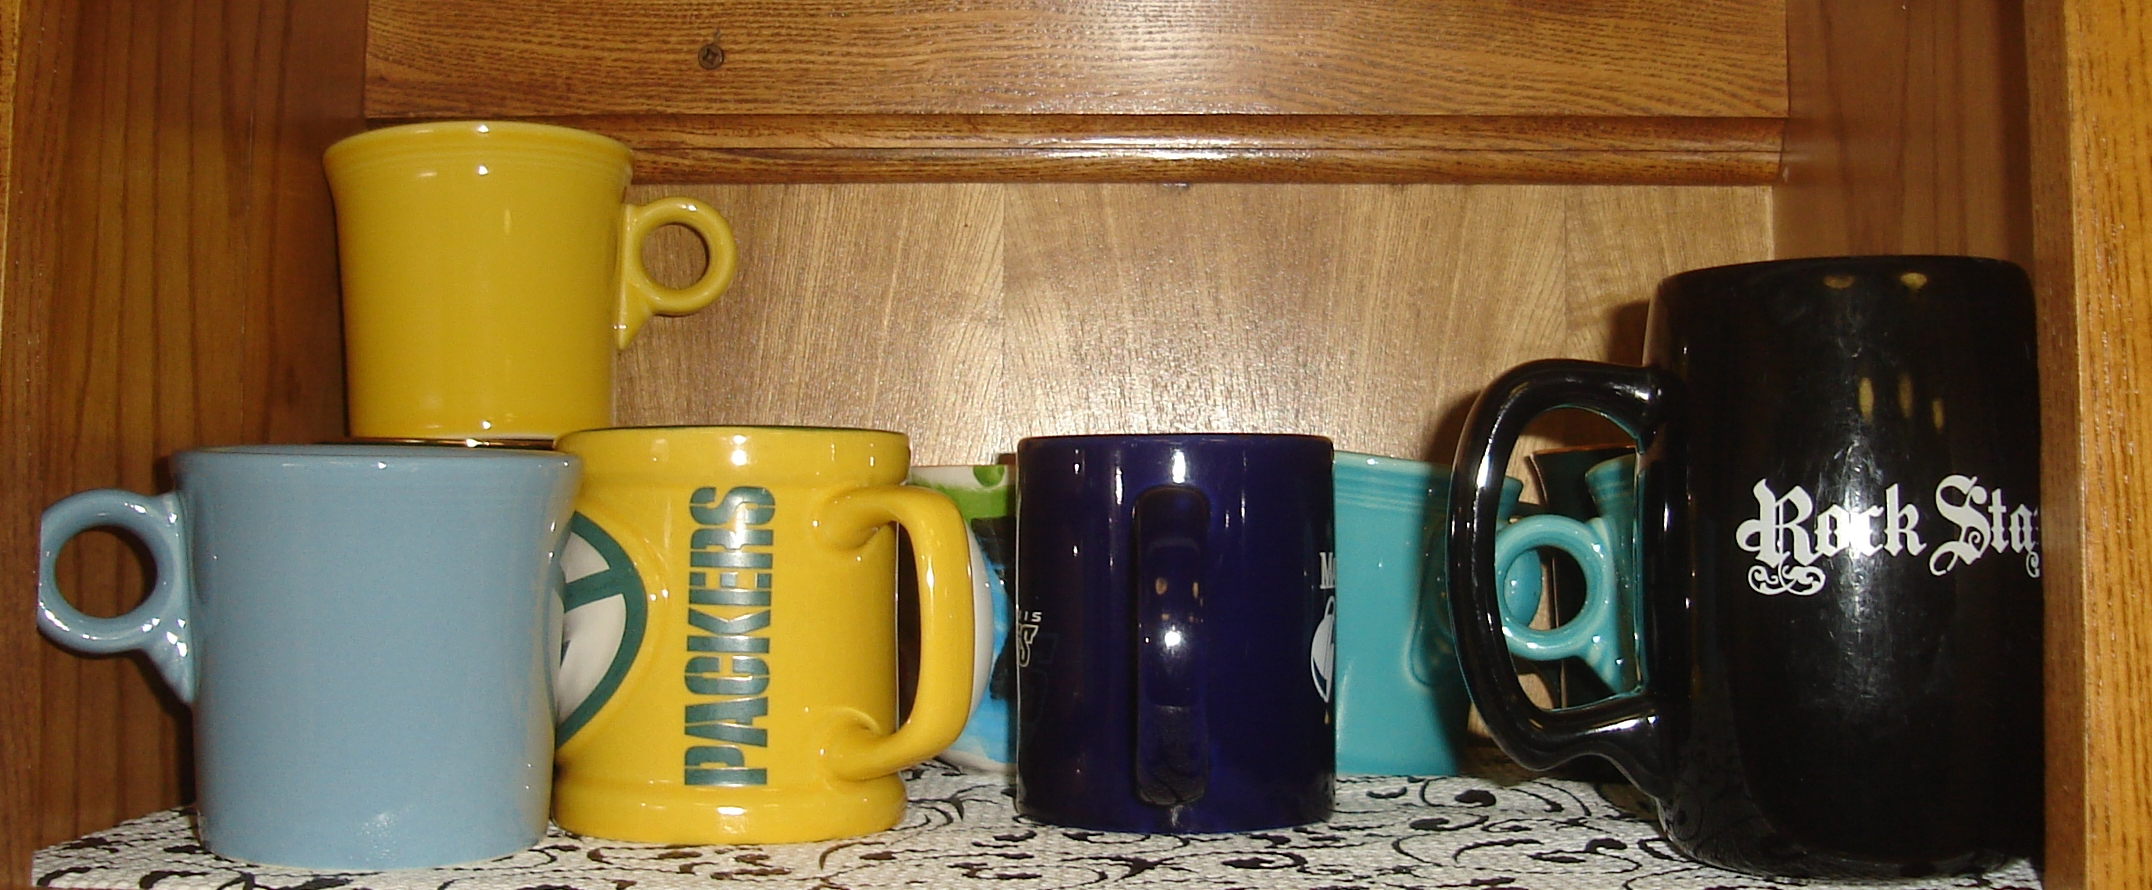 The upstairs coffee cups